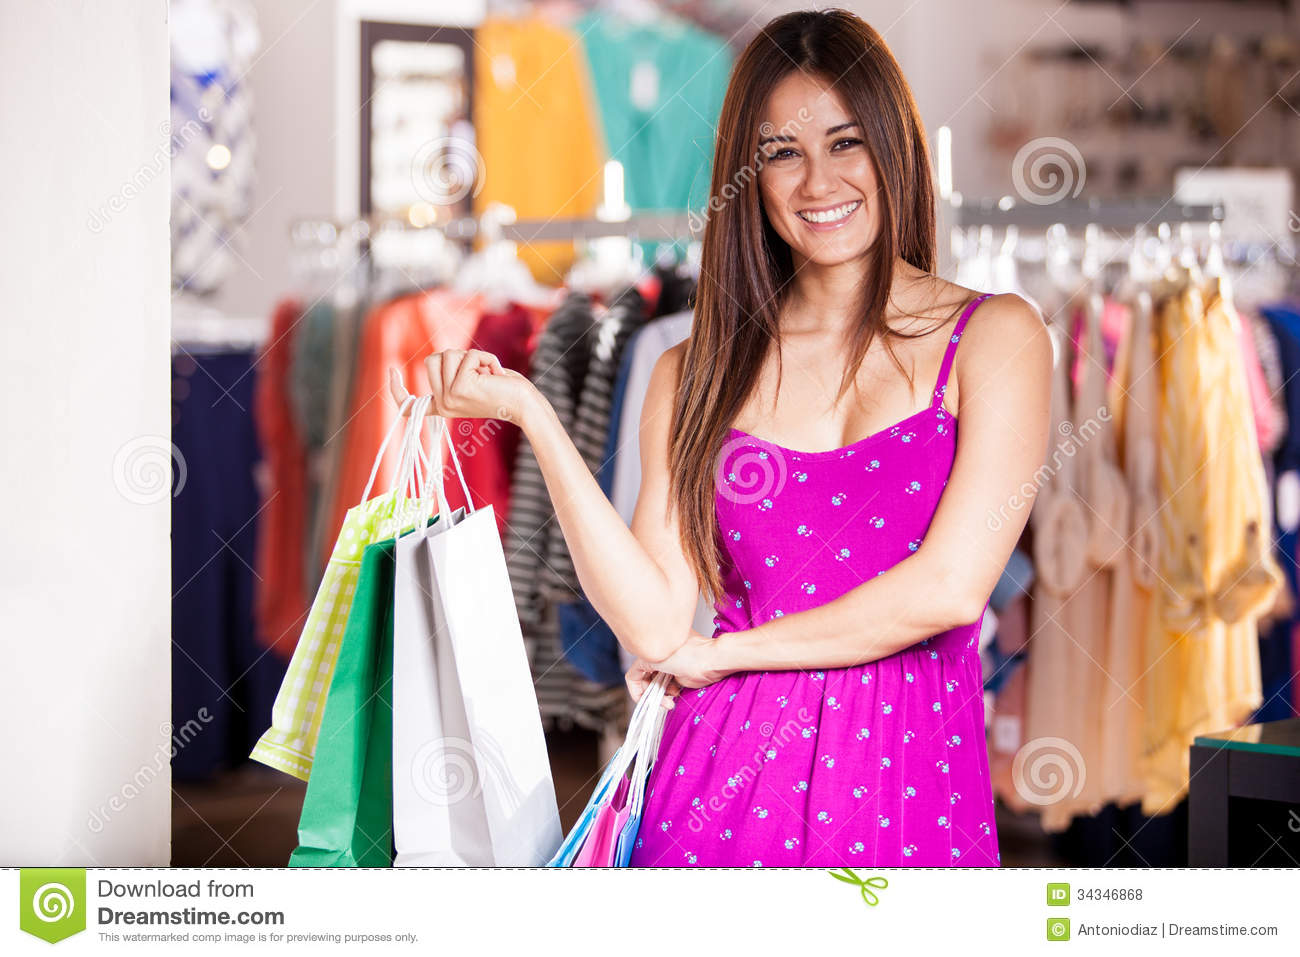 Clothing stores online Pretty woman clothing store website